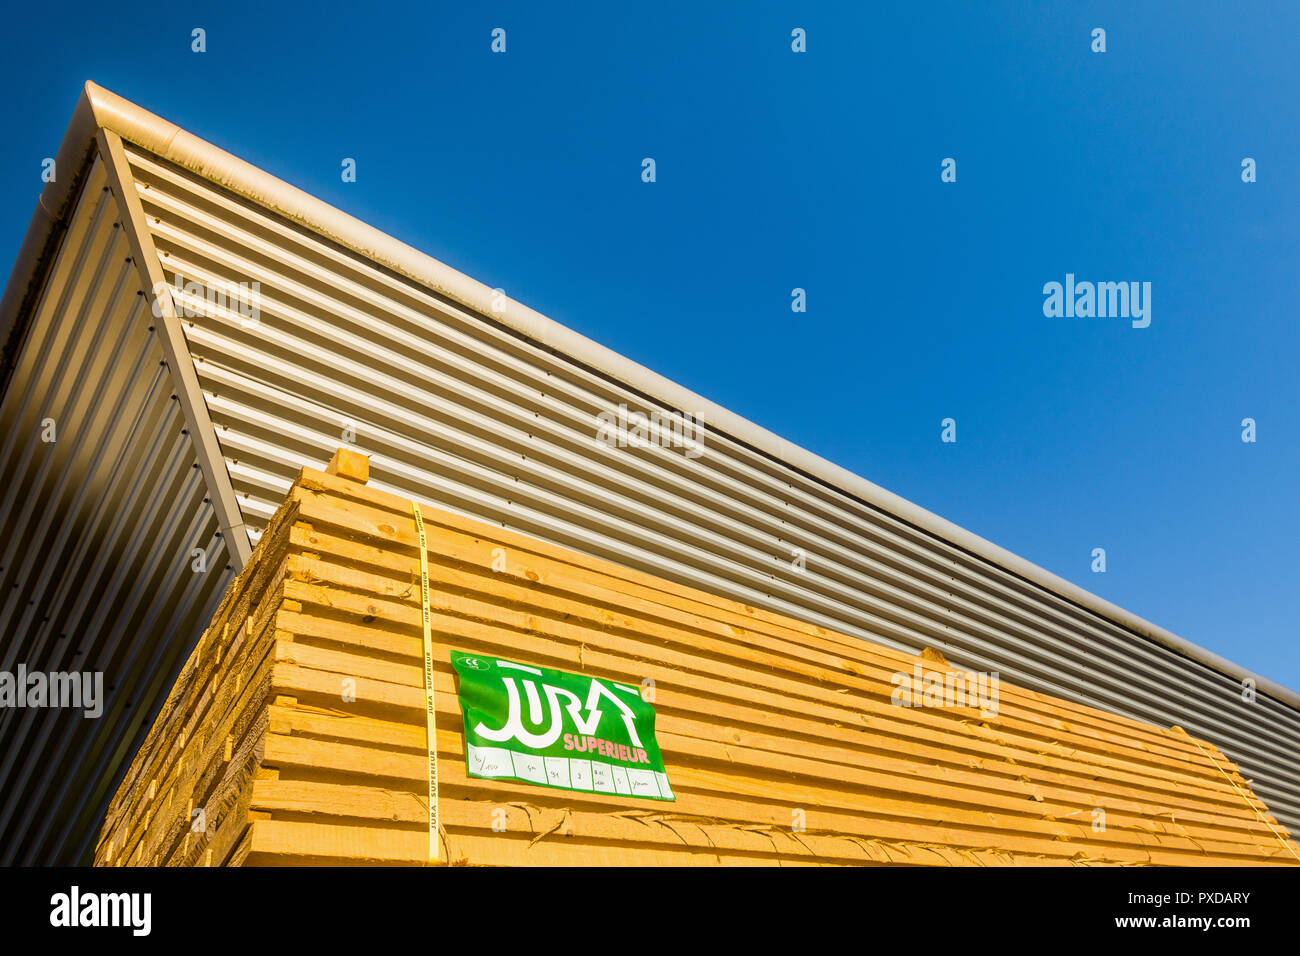 'Jura Superior' softwood timber for building construction - France. - Stock Image